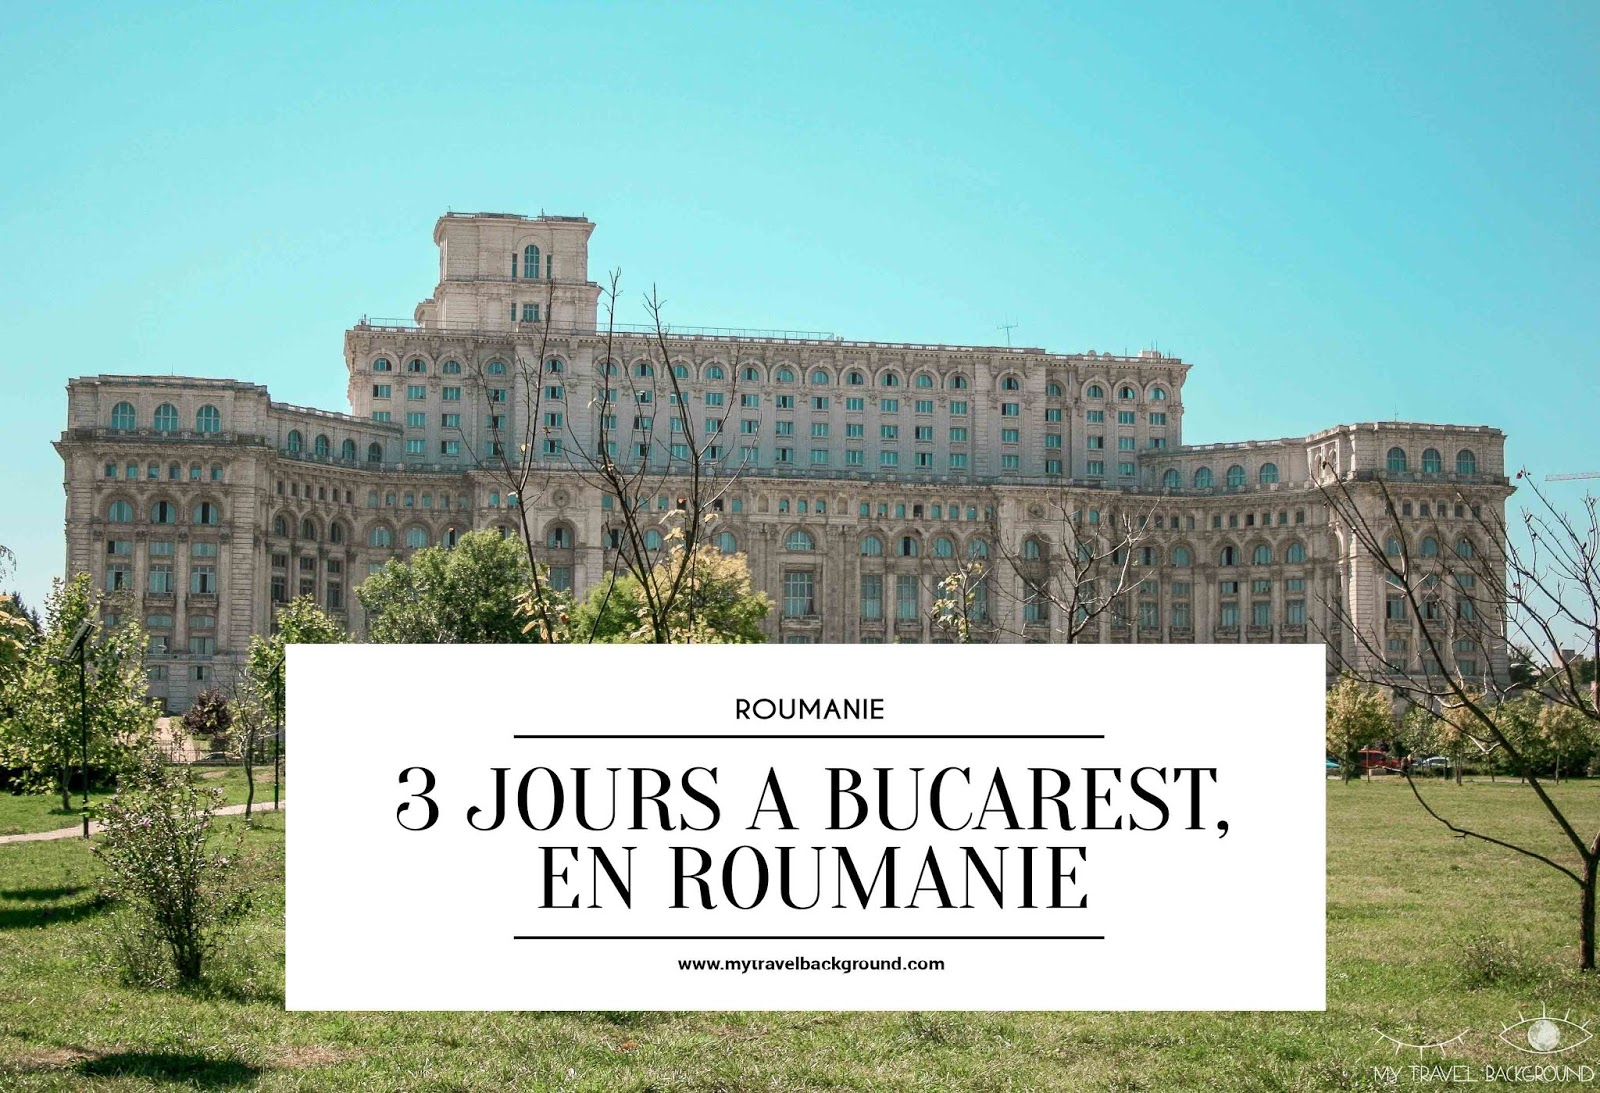 My Travel Background : 3 jours à Bucarest en Roumanie - Palais du Parlement